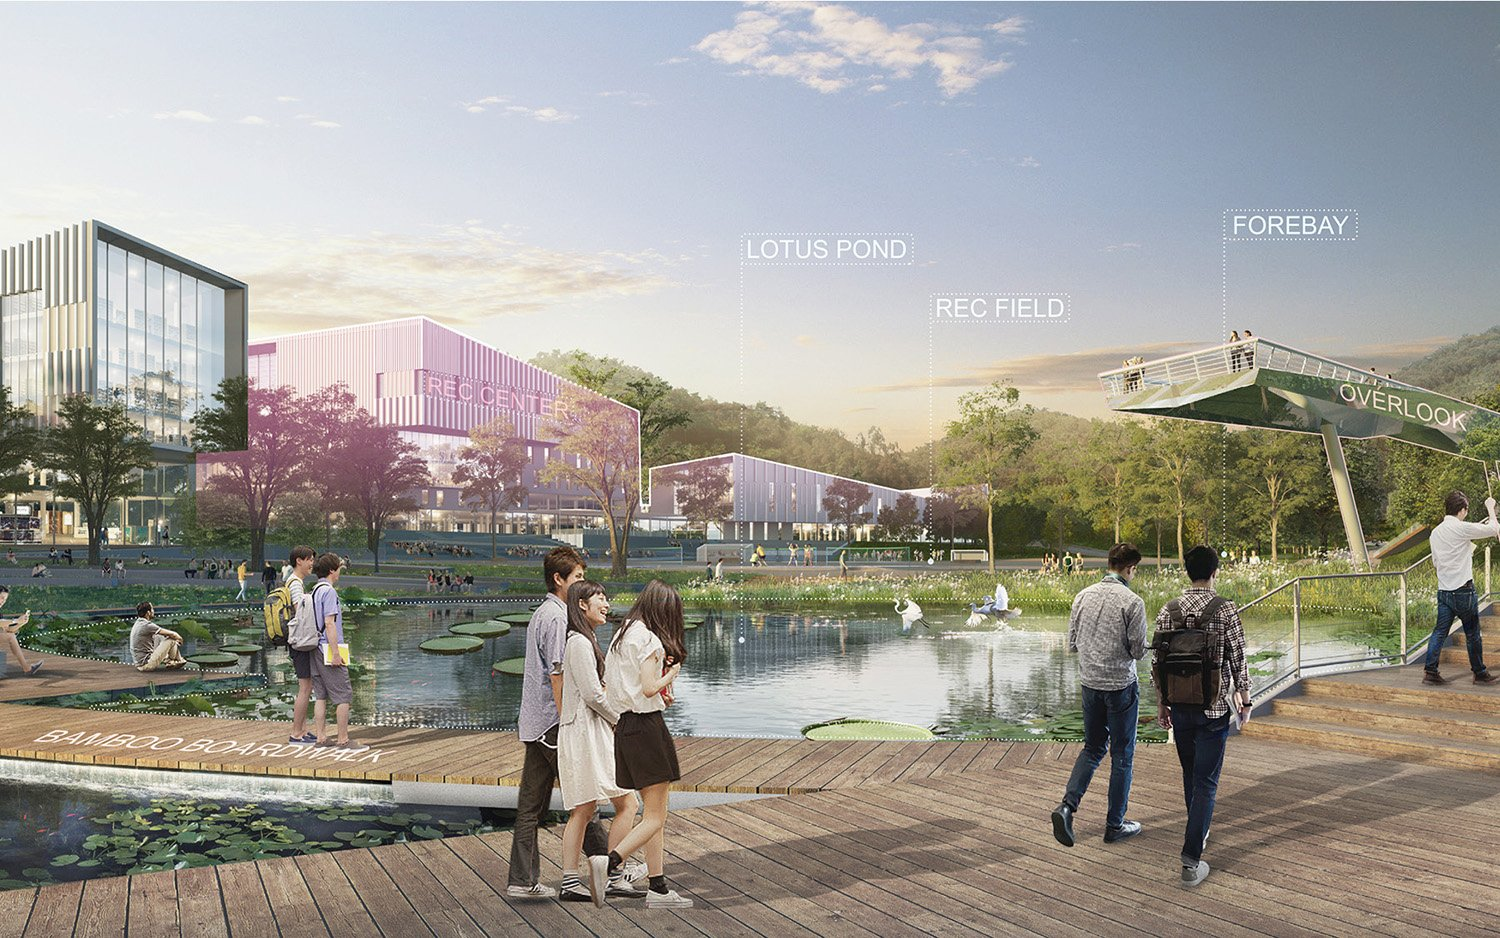 A popular landscape amenity, the lotus pond also provides important ecosystem services such as filtering surface runoff from the adjacent recreation fields. SASAKI}